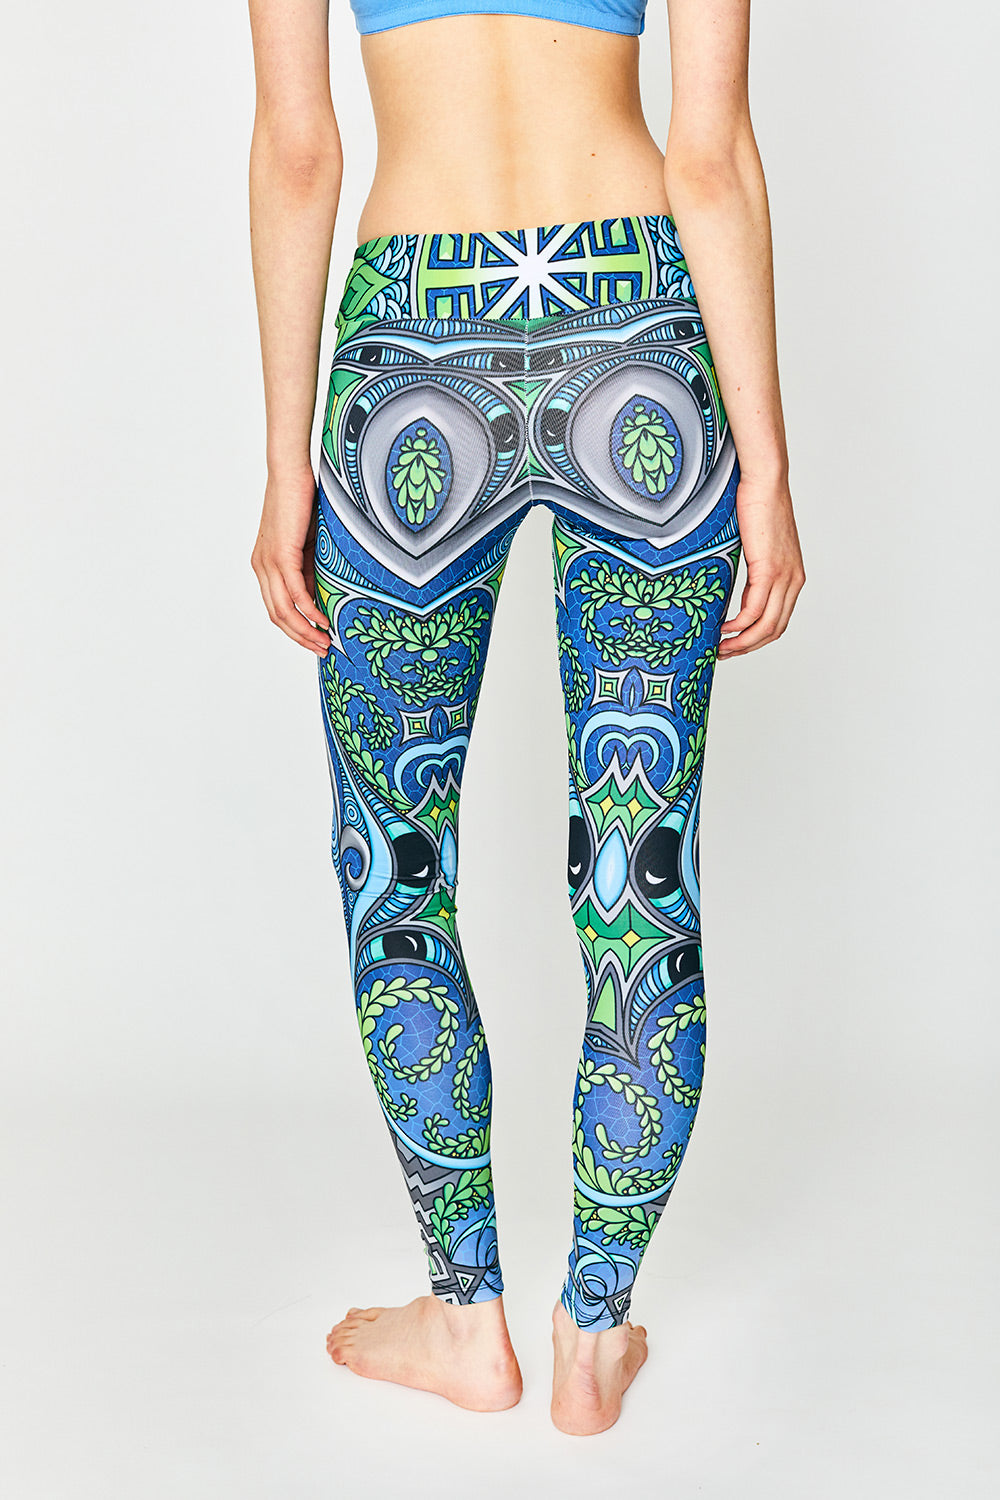 Frequency 2 Leggings